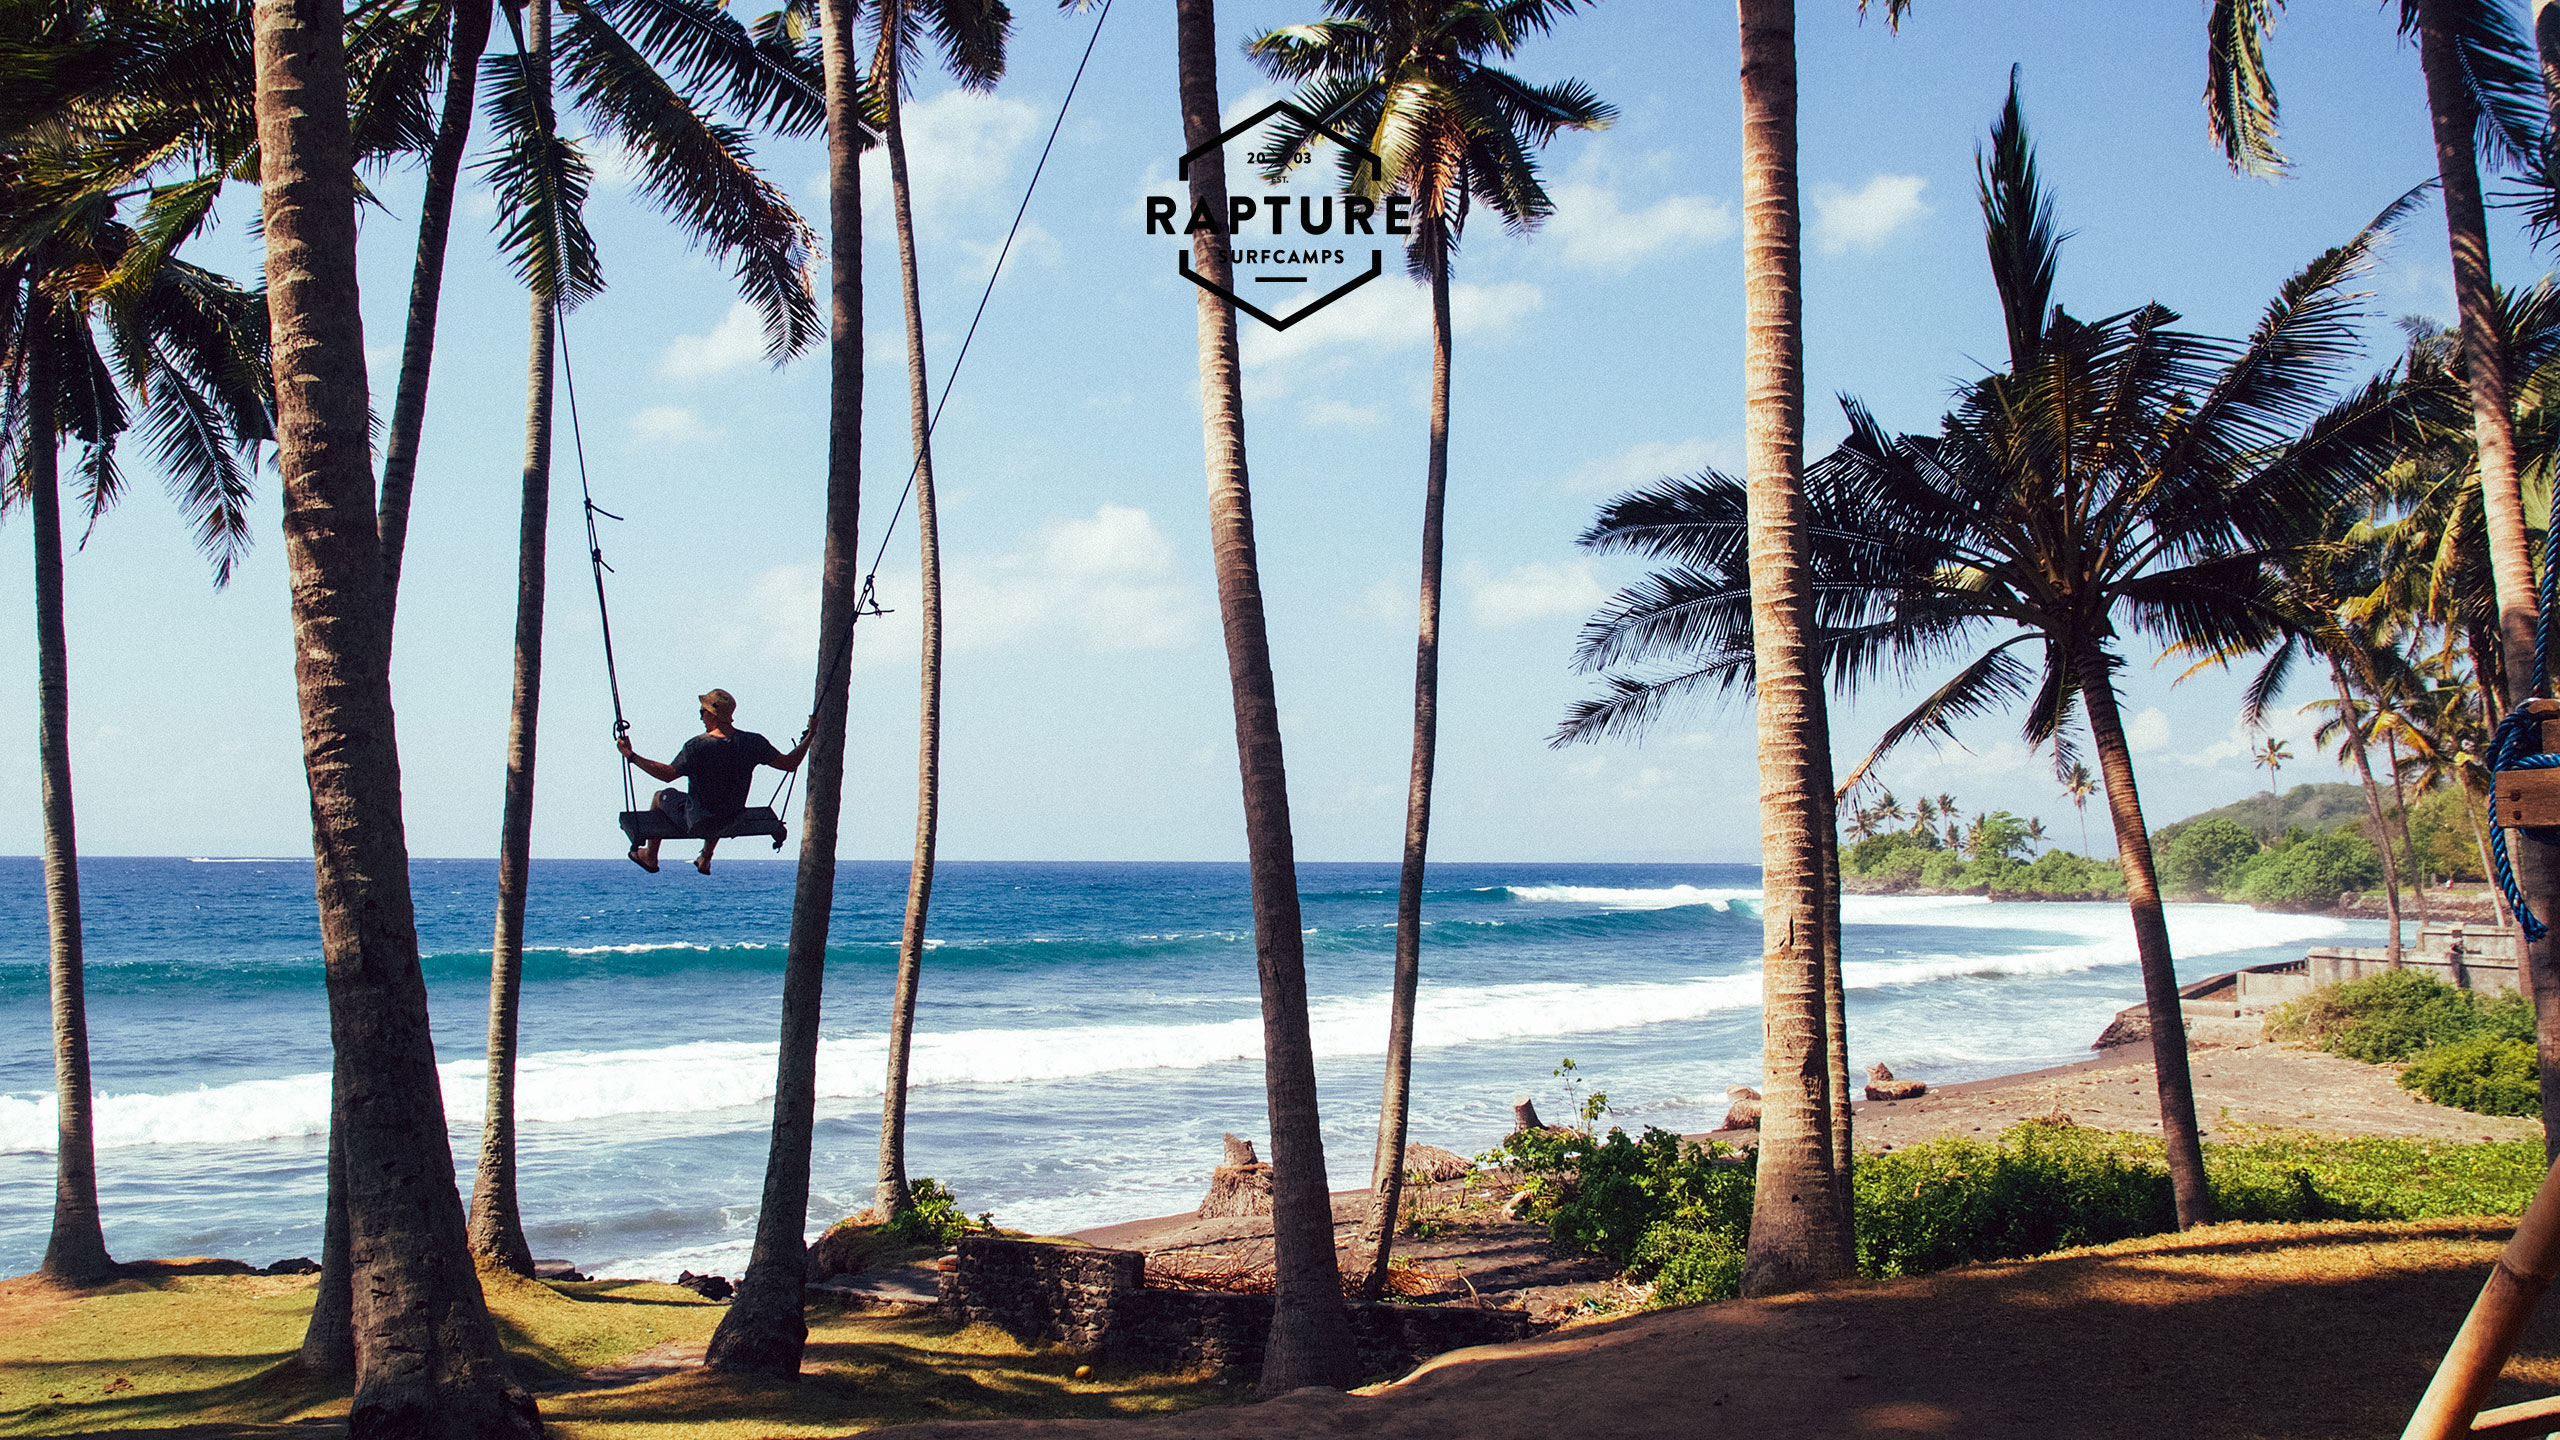 2560x1440 - Surfing Wallpapers 24